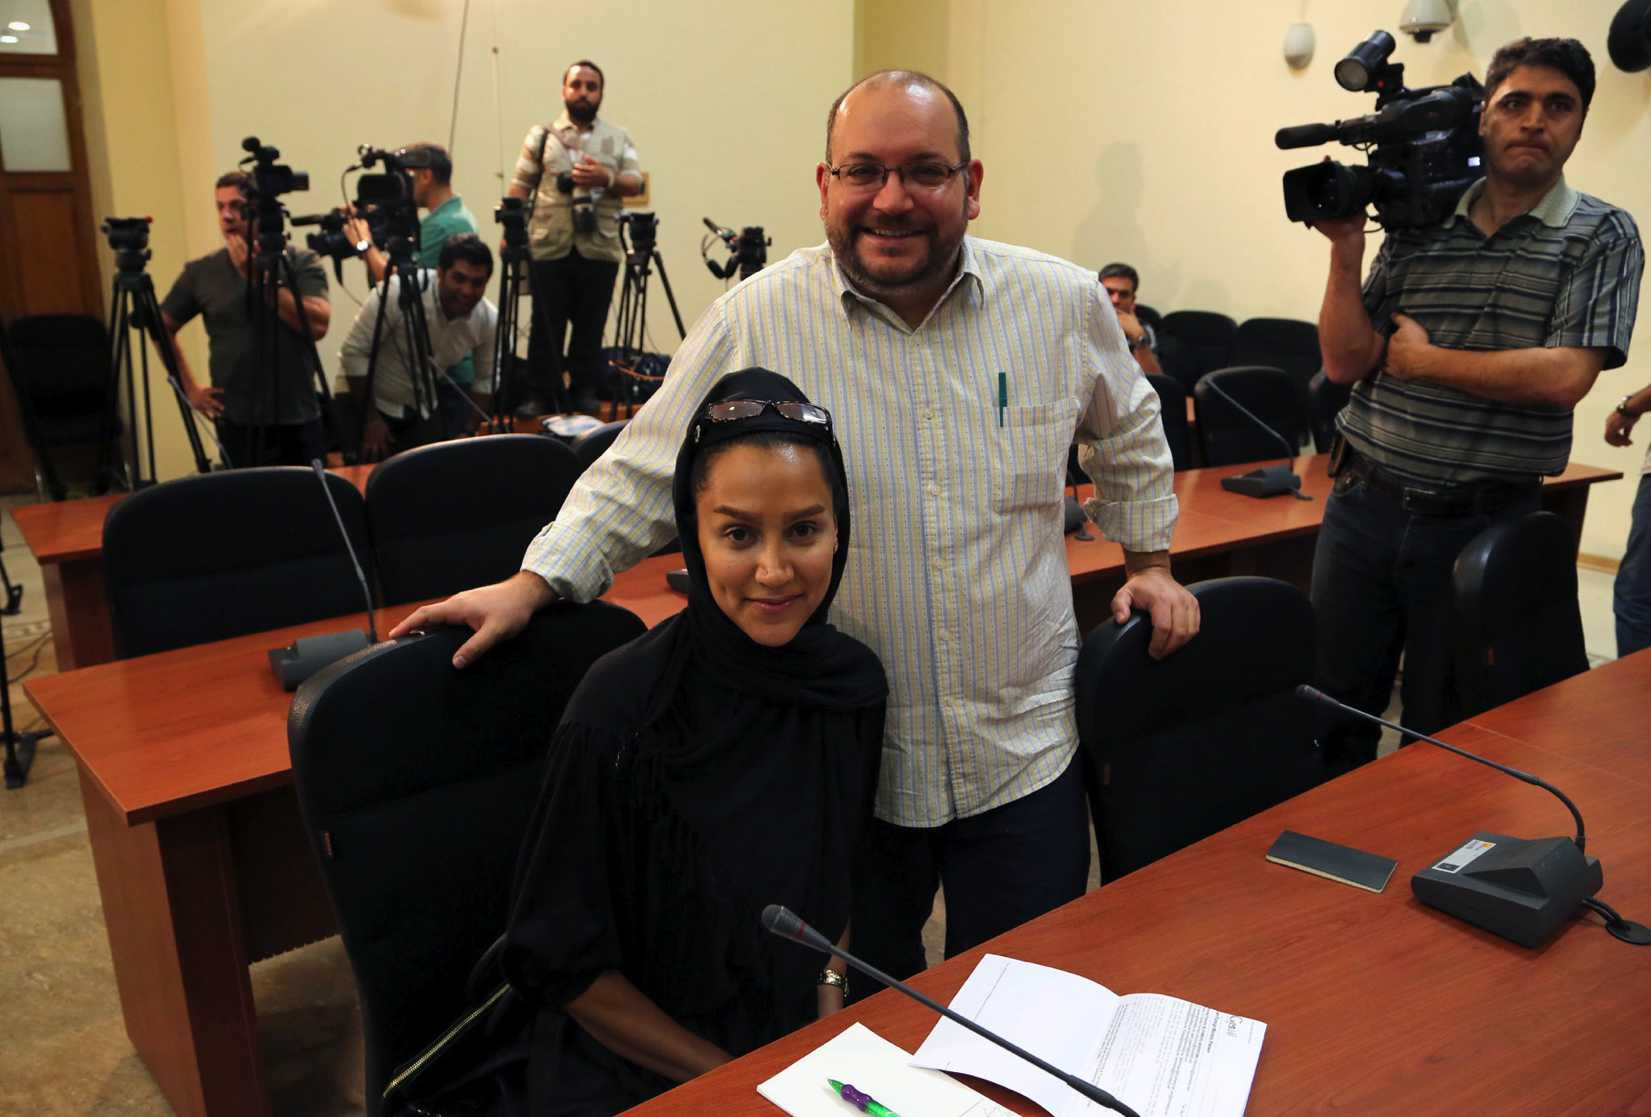 Washington Post Iranian-American journalist Jason Rezaian, right, and his Iranian wife Yeganeh Salehi, who works for the the National, an UAE newspaper, during a Foreign Ministry weekly press conference in Tehran on Sept. 10, 2013